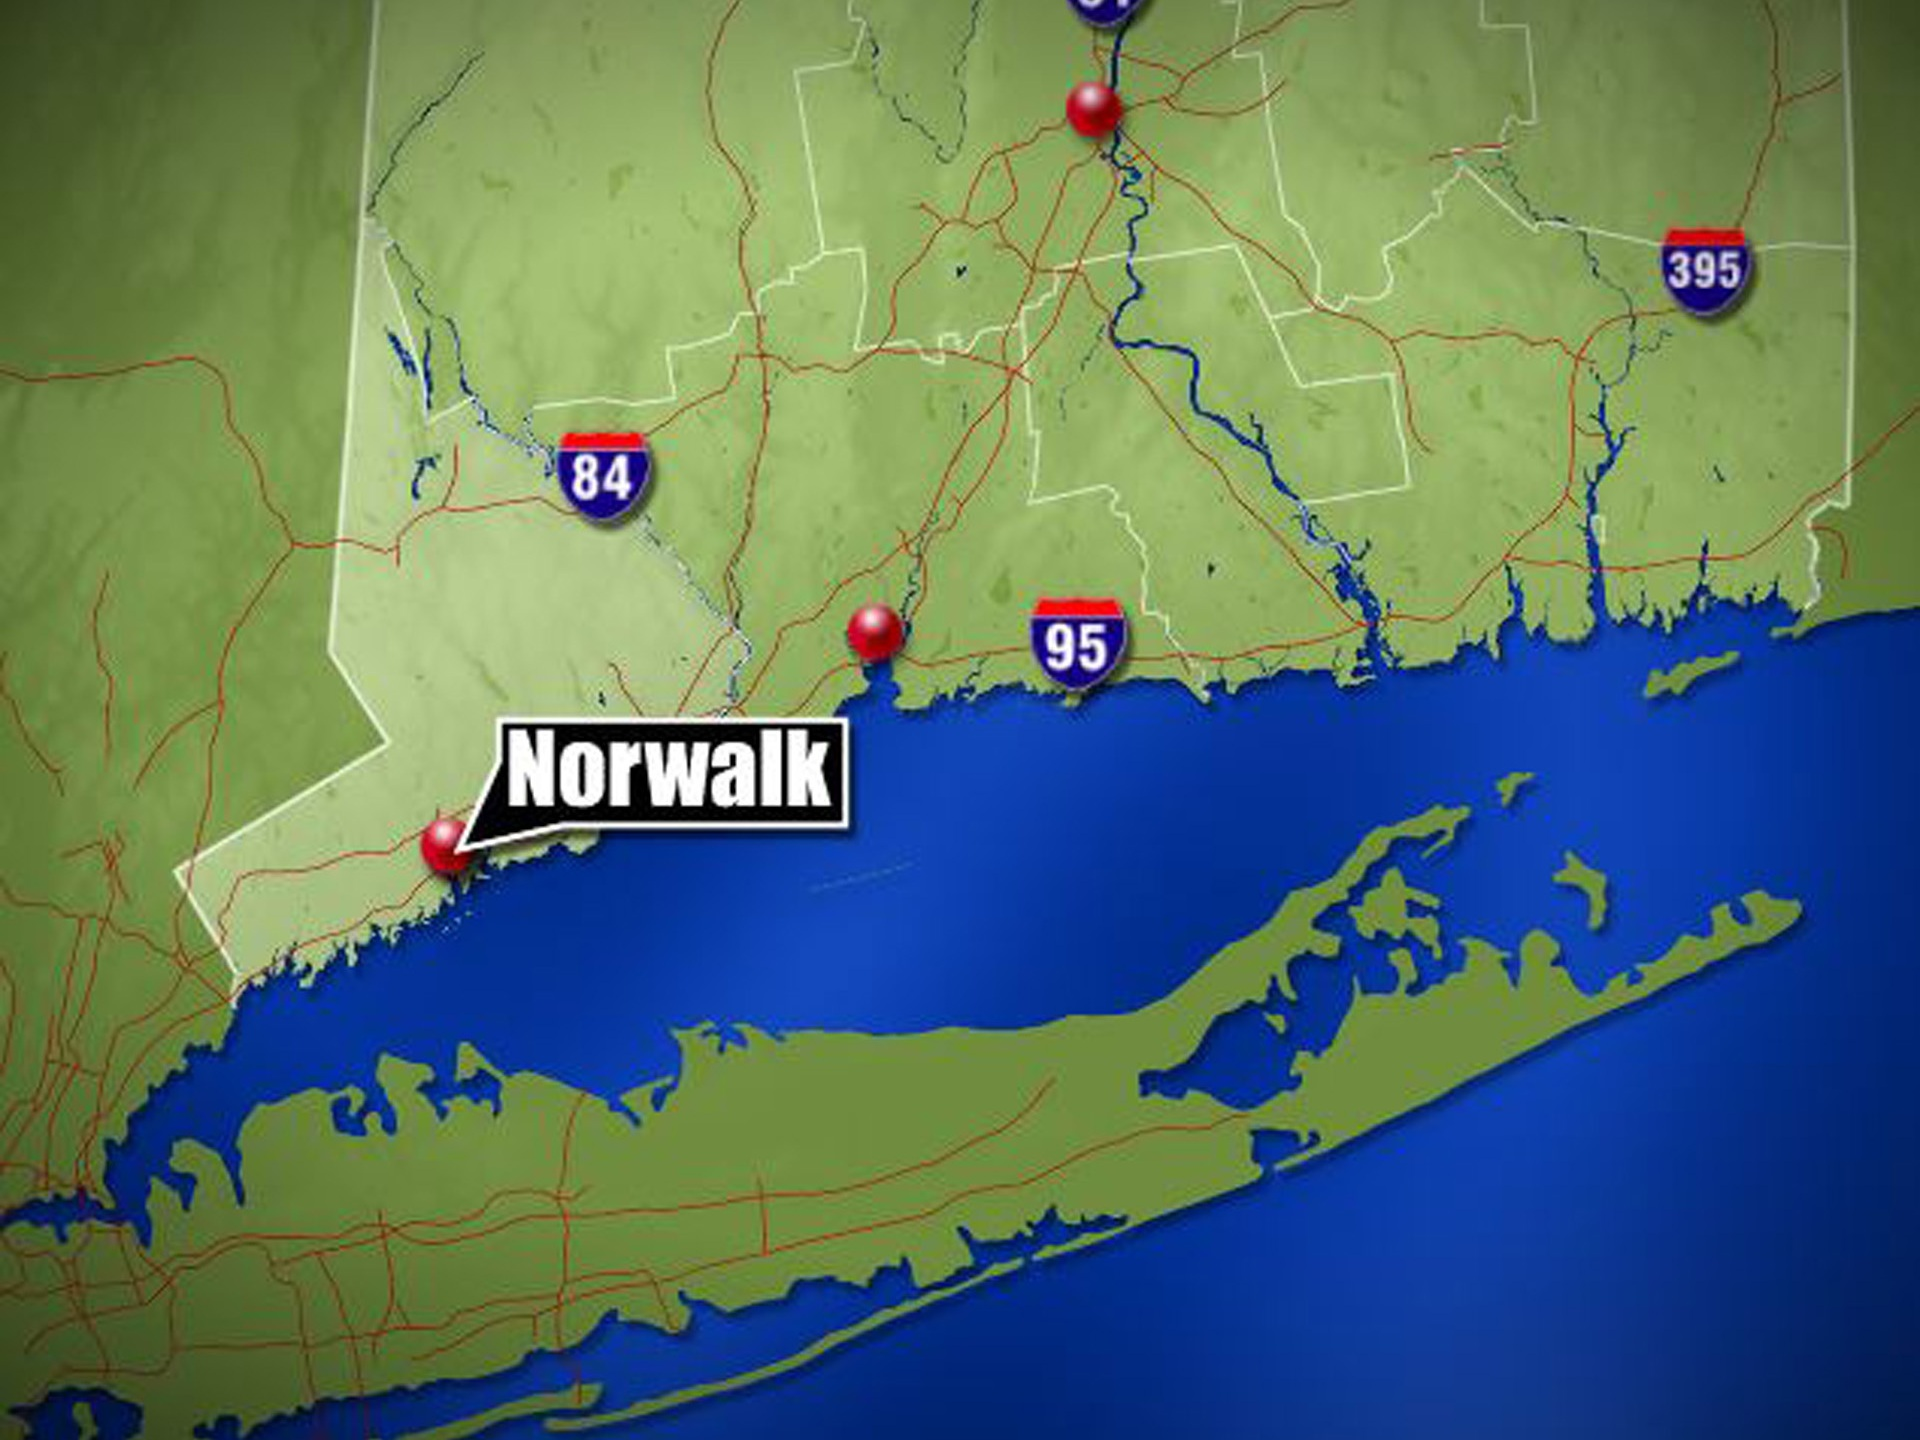 norwalk map.jpg